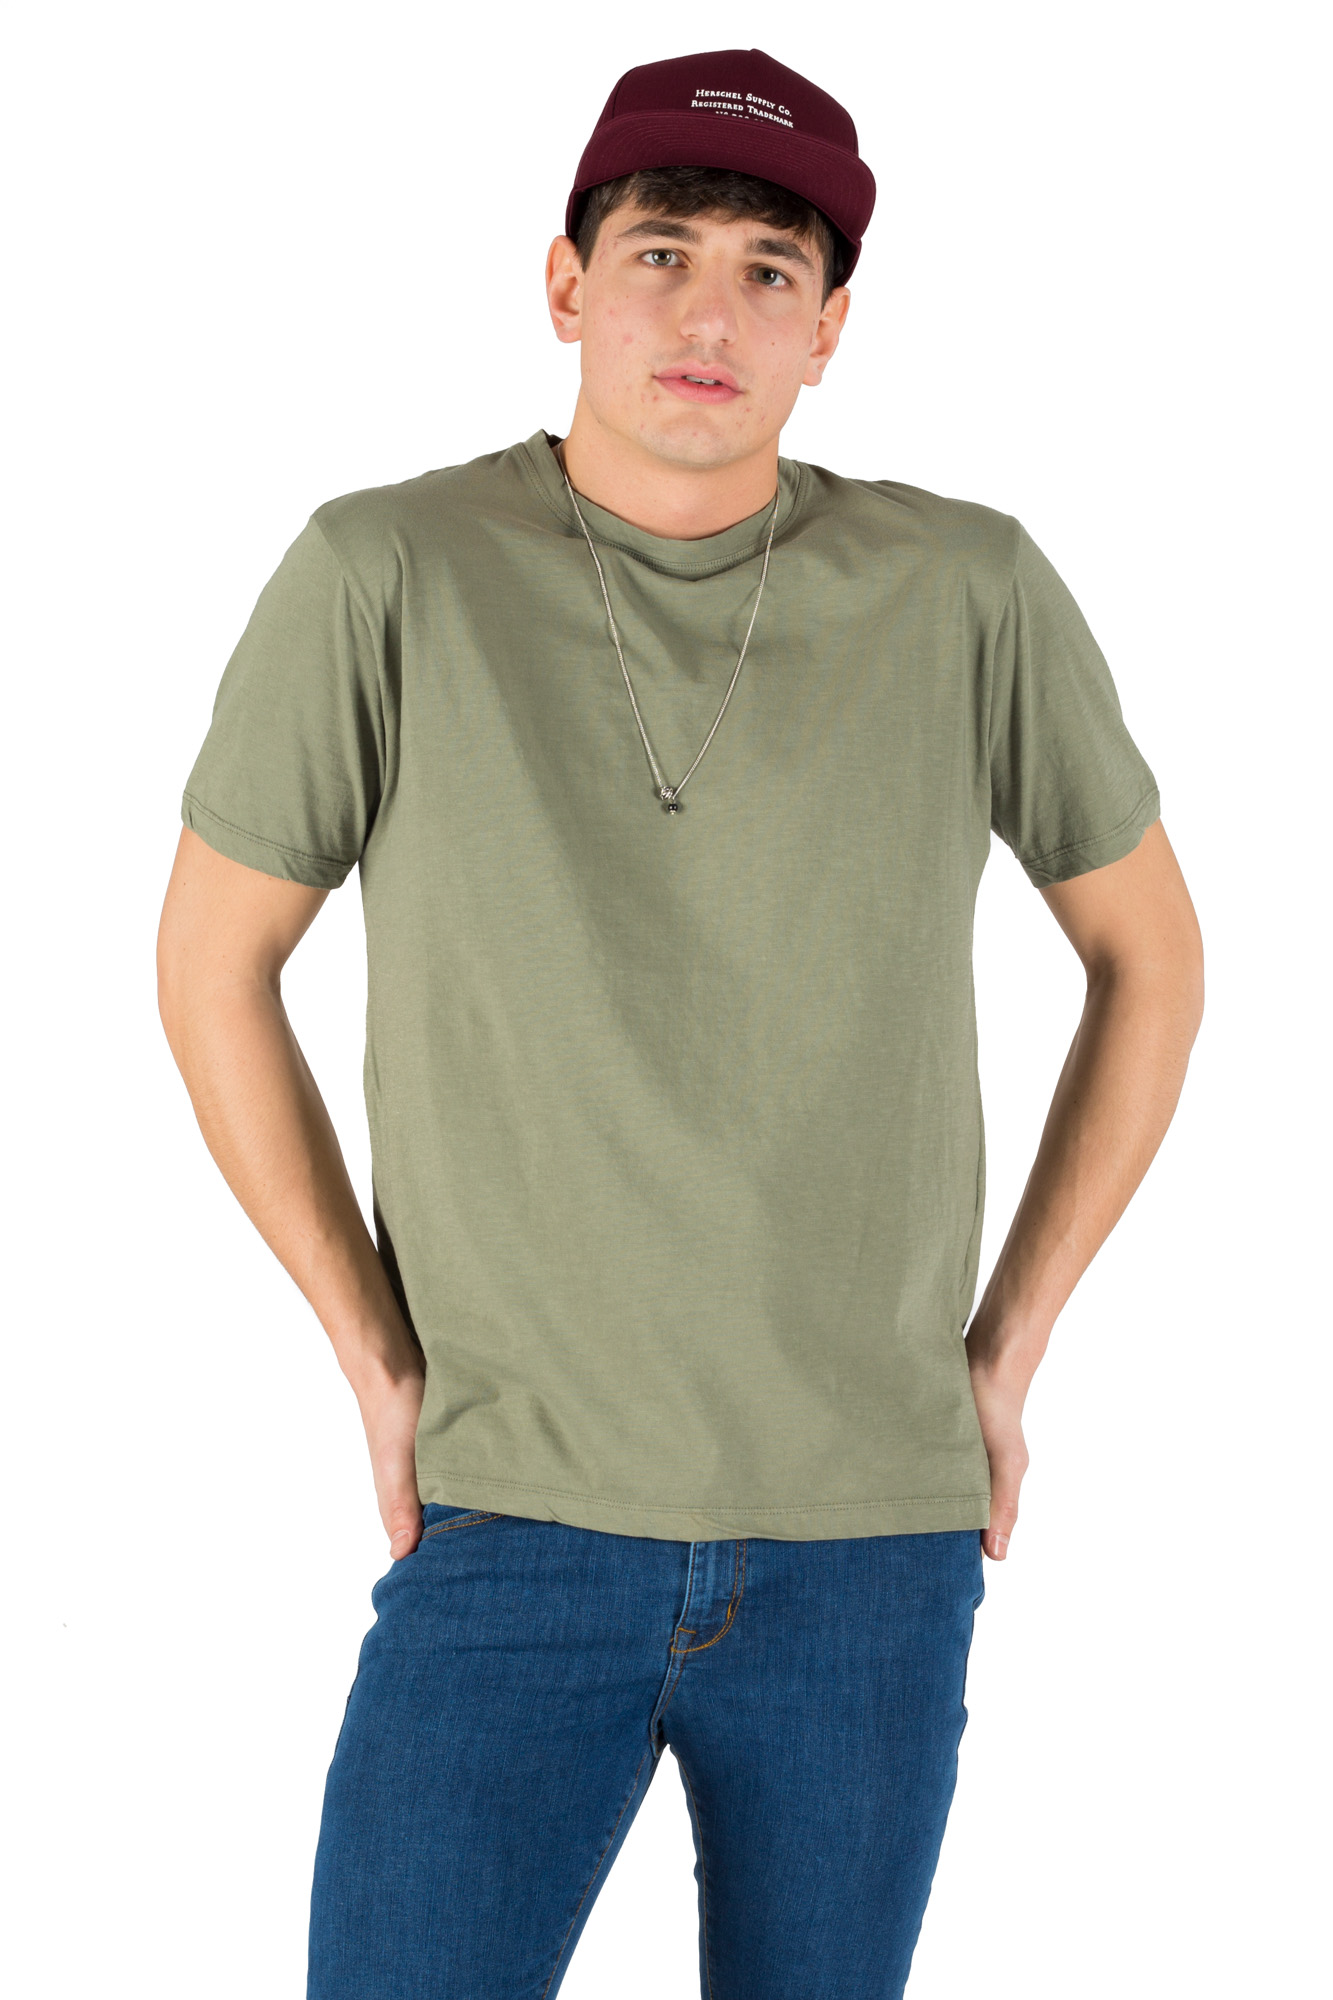 Paura - T-shirt basic olive